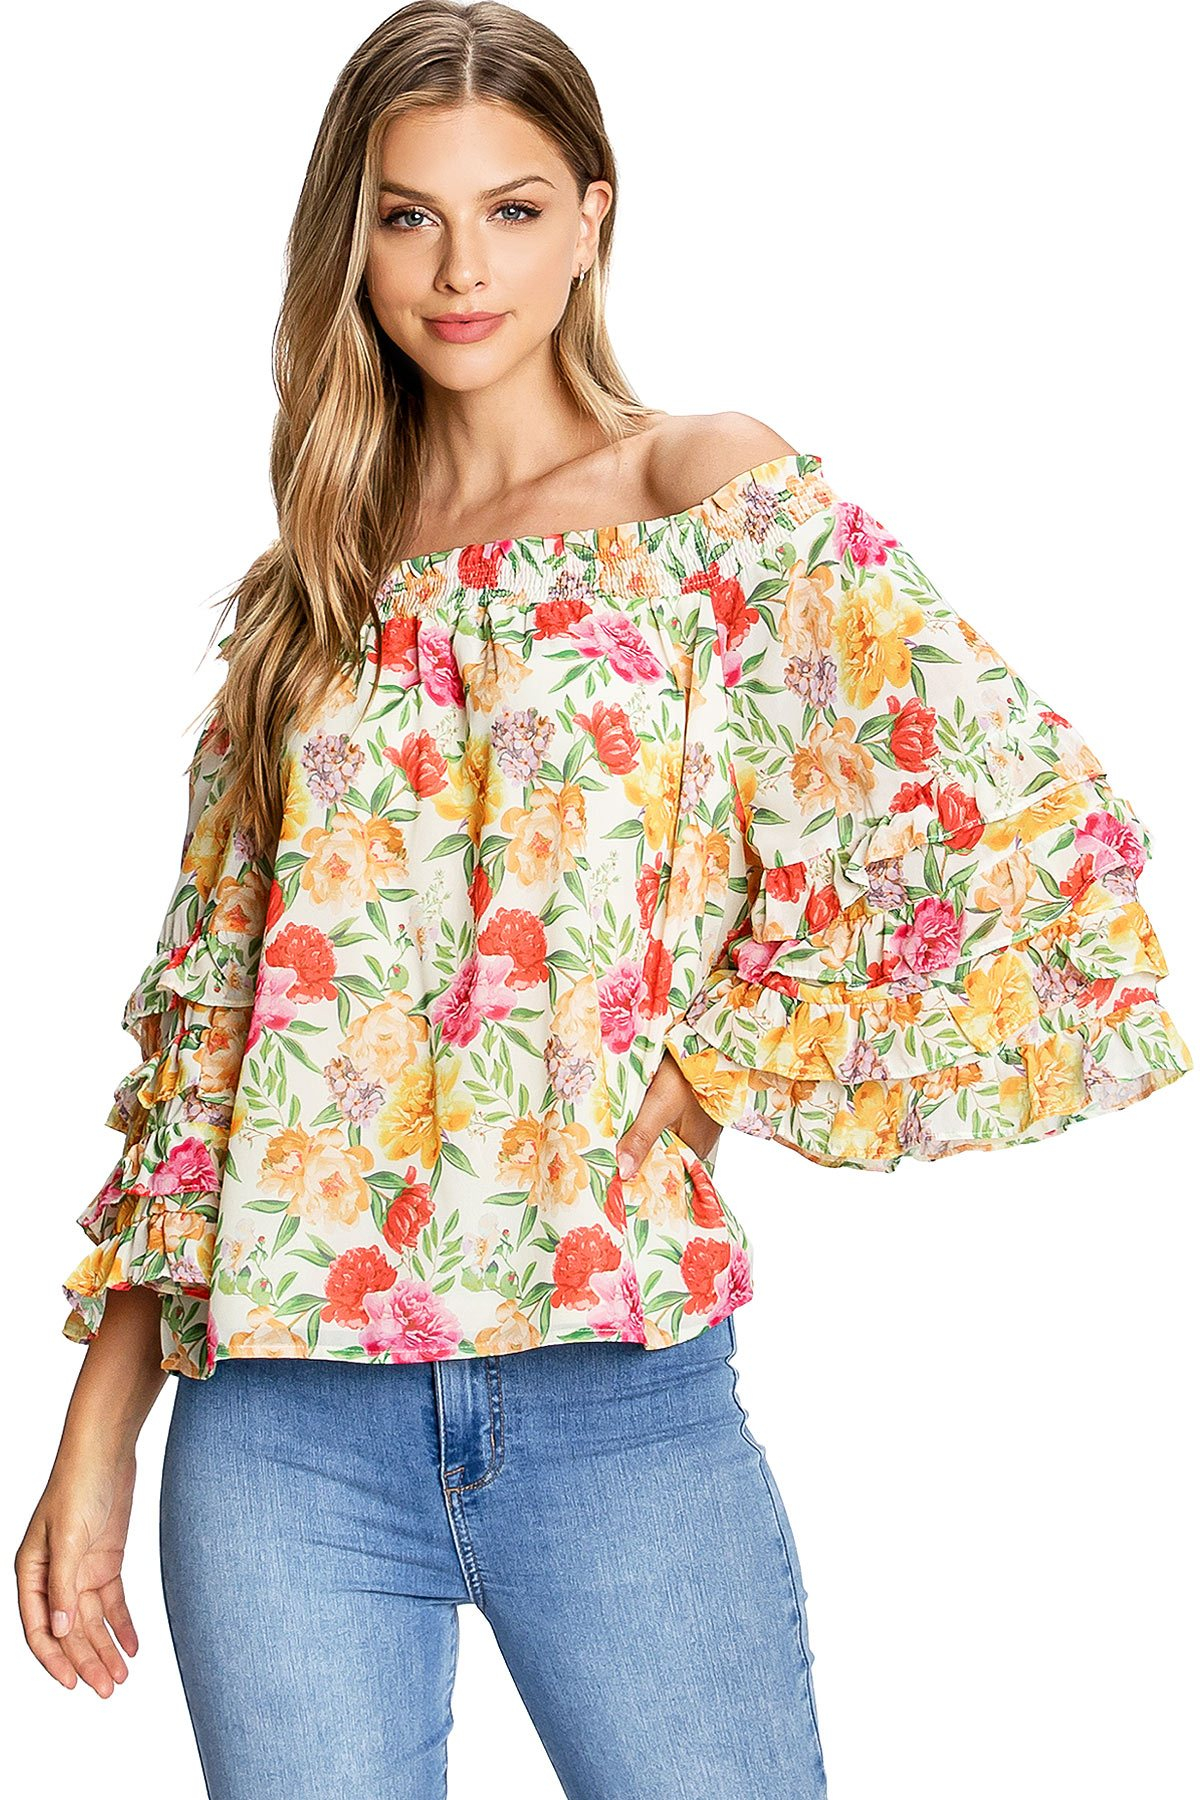 Image of Miami Bloom Blouse